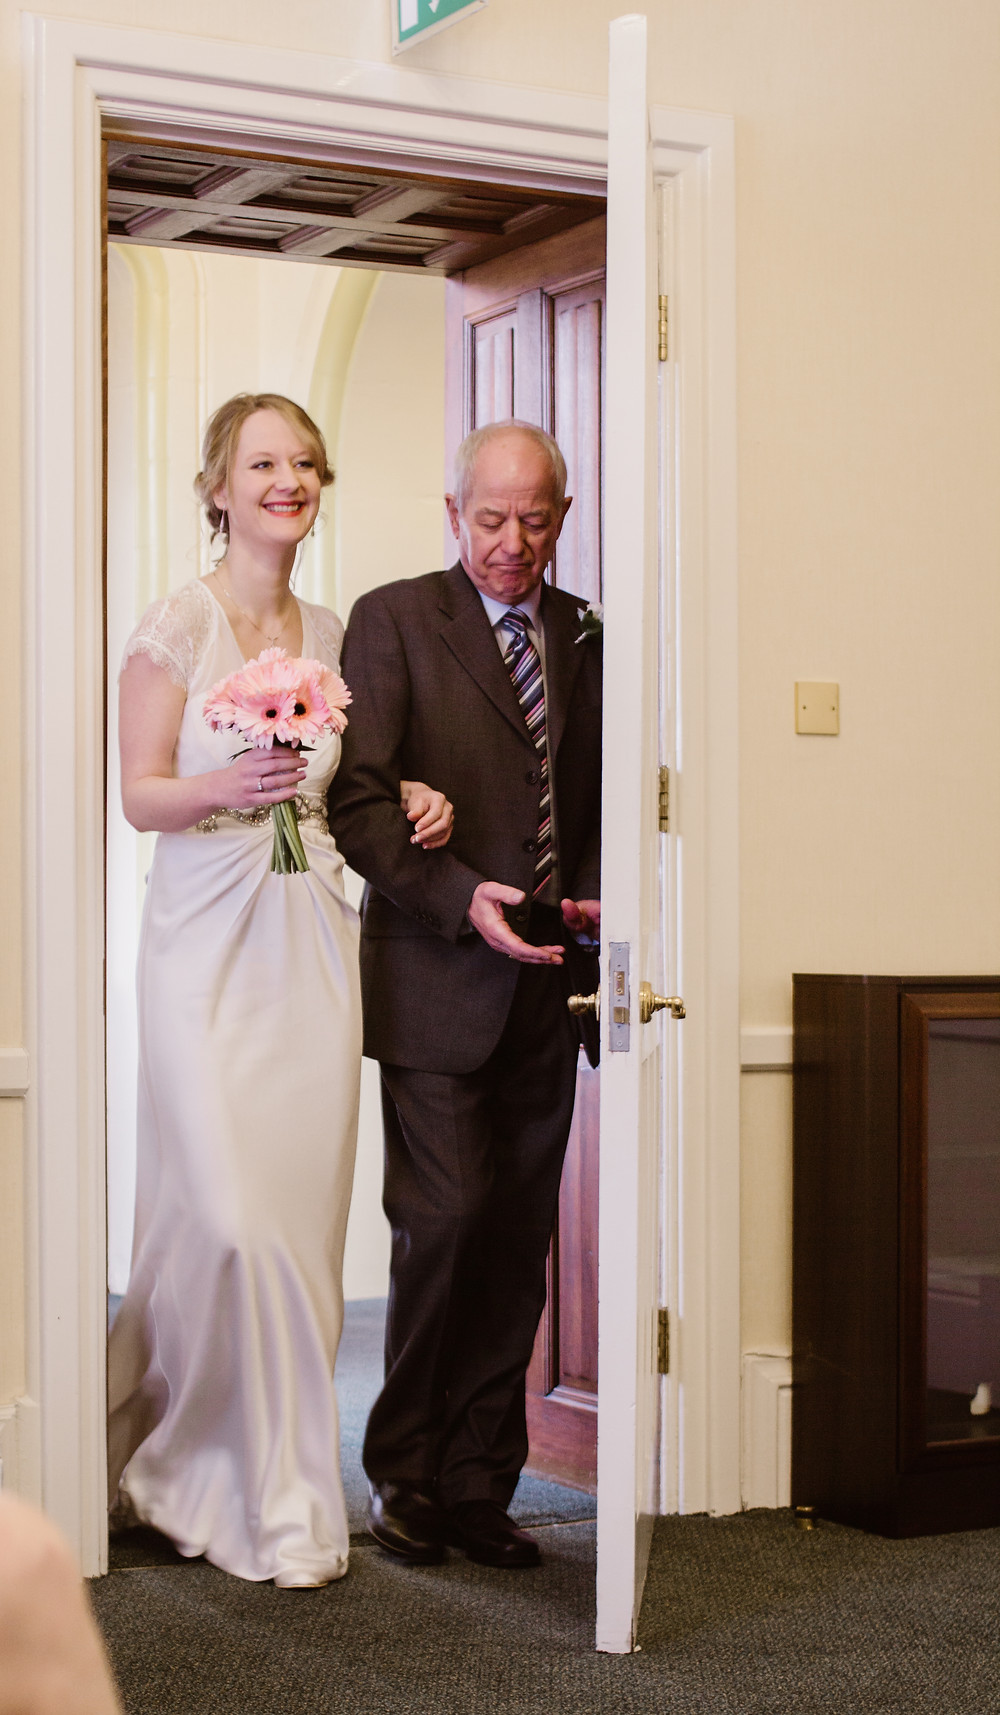 Wedding Photography at Calderdale Registry Office